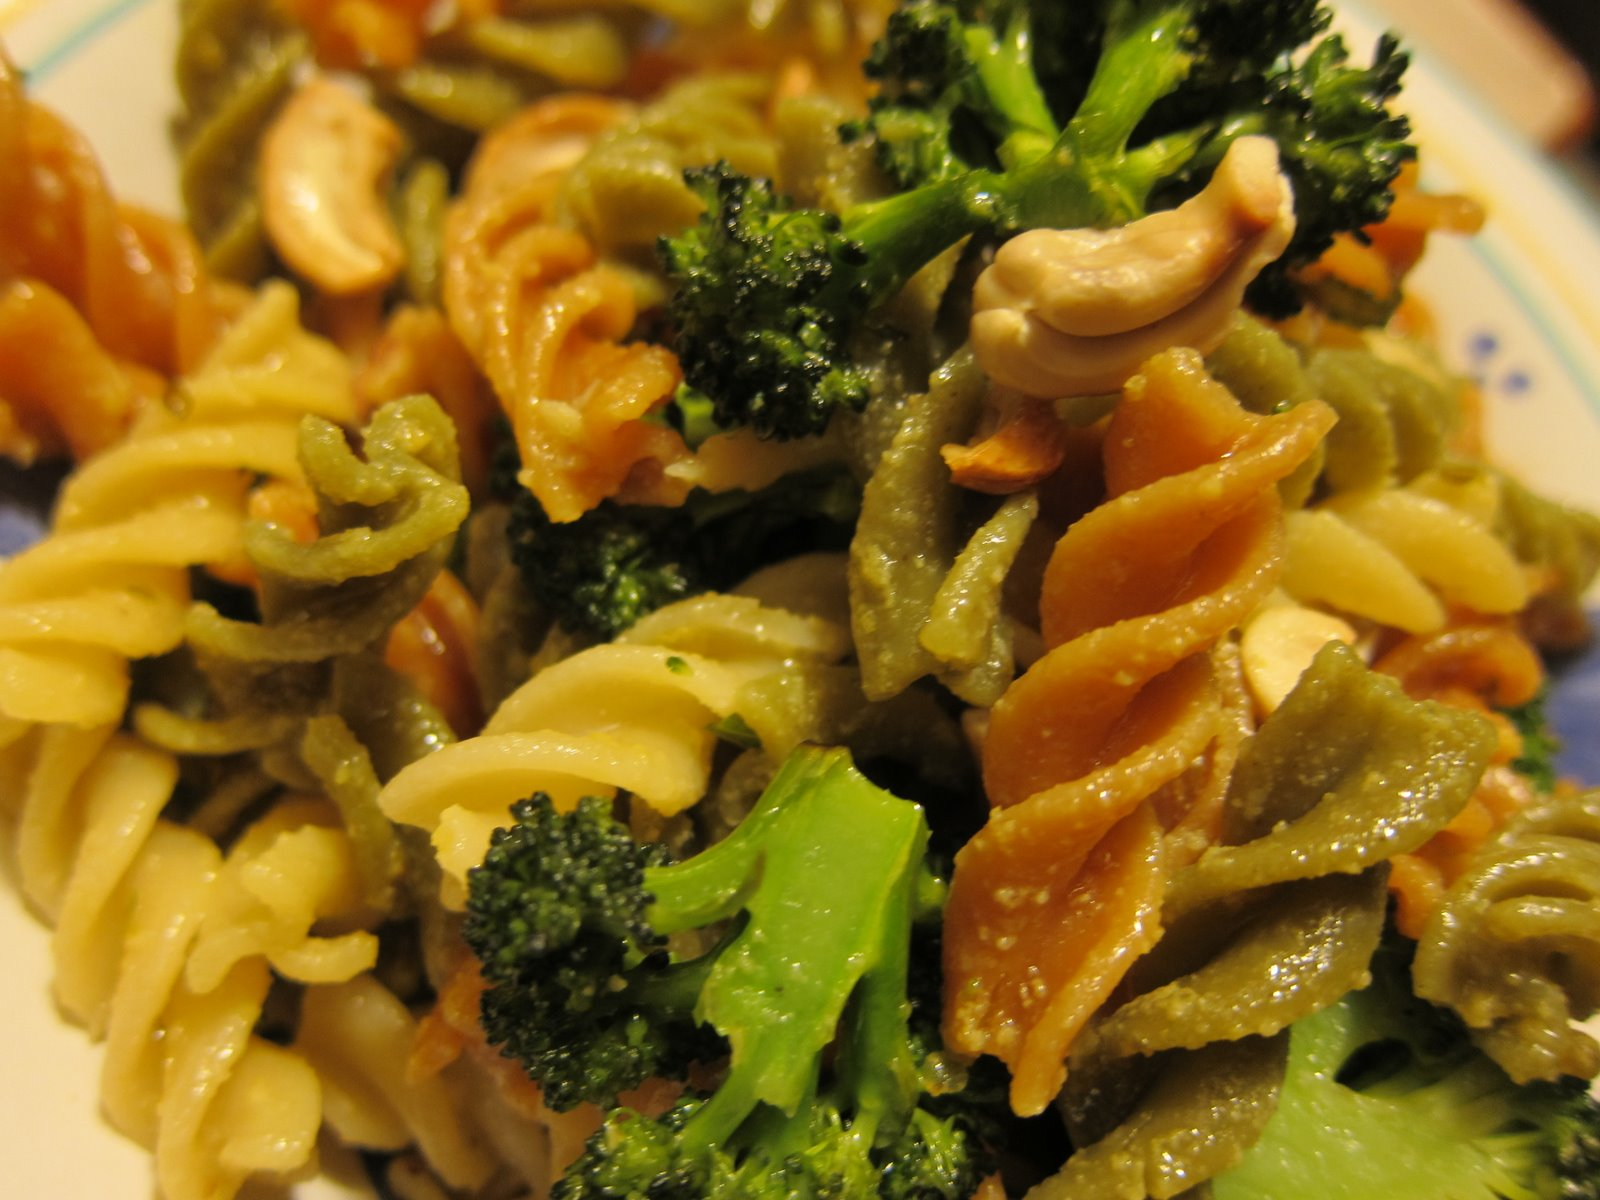 WholeFoodVegan: Garlic Butter Pasta with Roasted Broccoli and Cashews